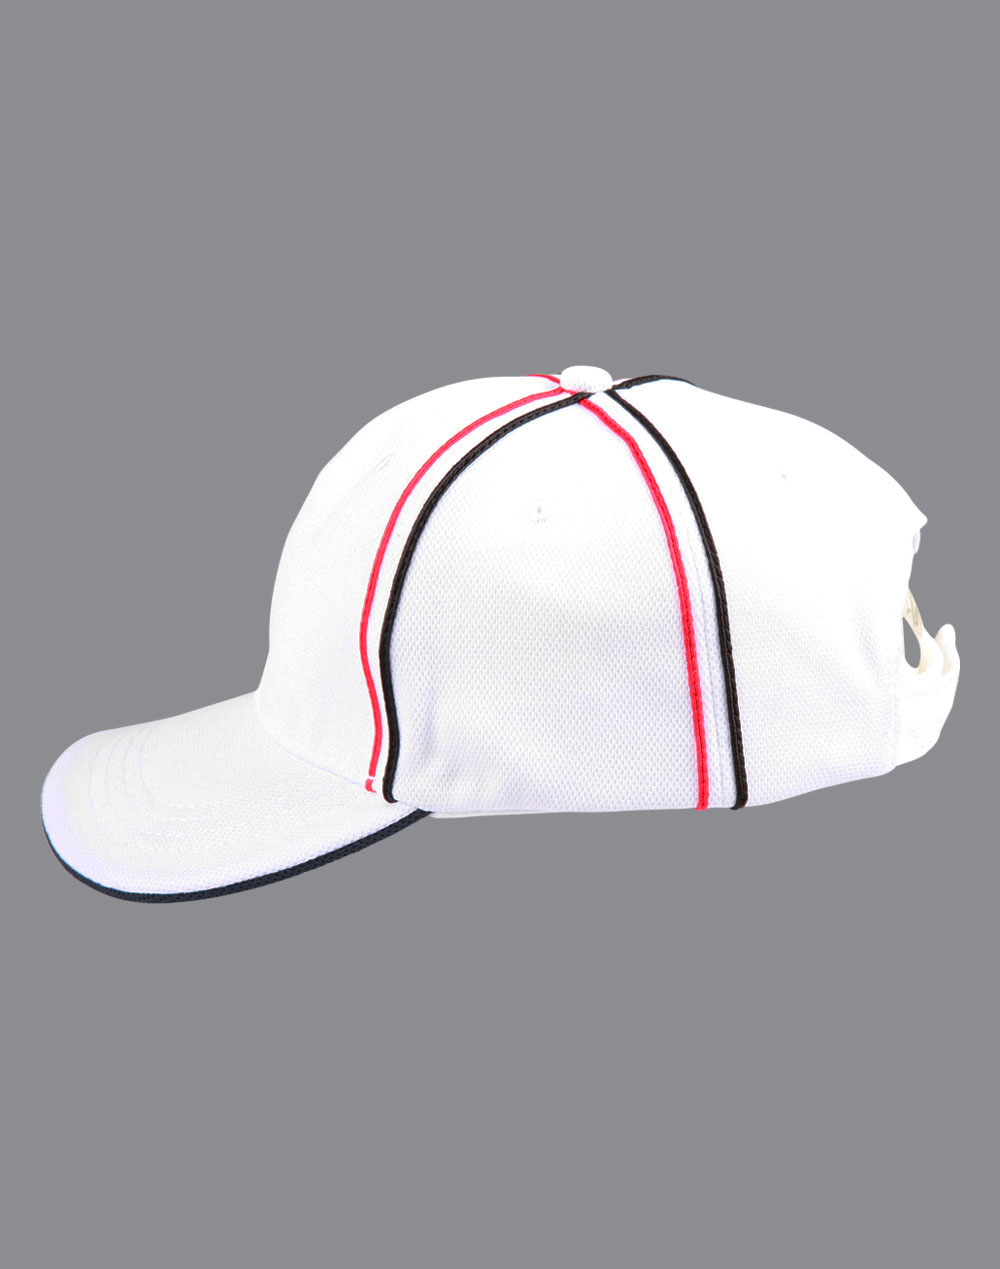 https://s3-ap-southeast-1.amazonaws.com/ws-imgs/CAPS/CH76_White.Navy.Red_Side.jpg